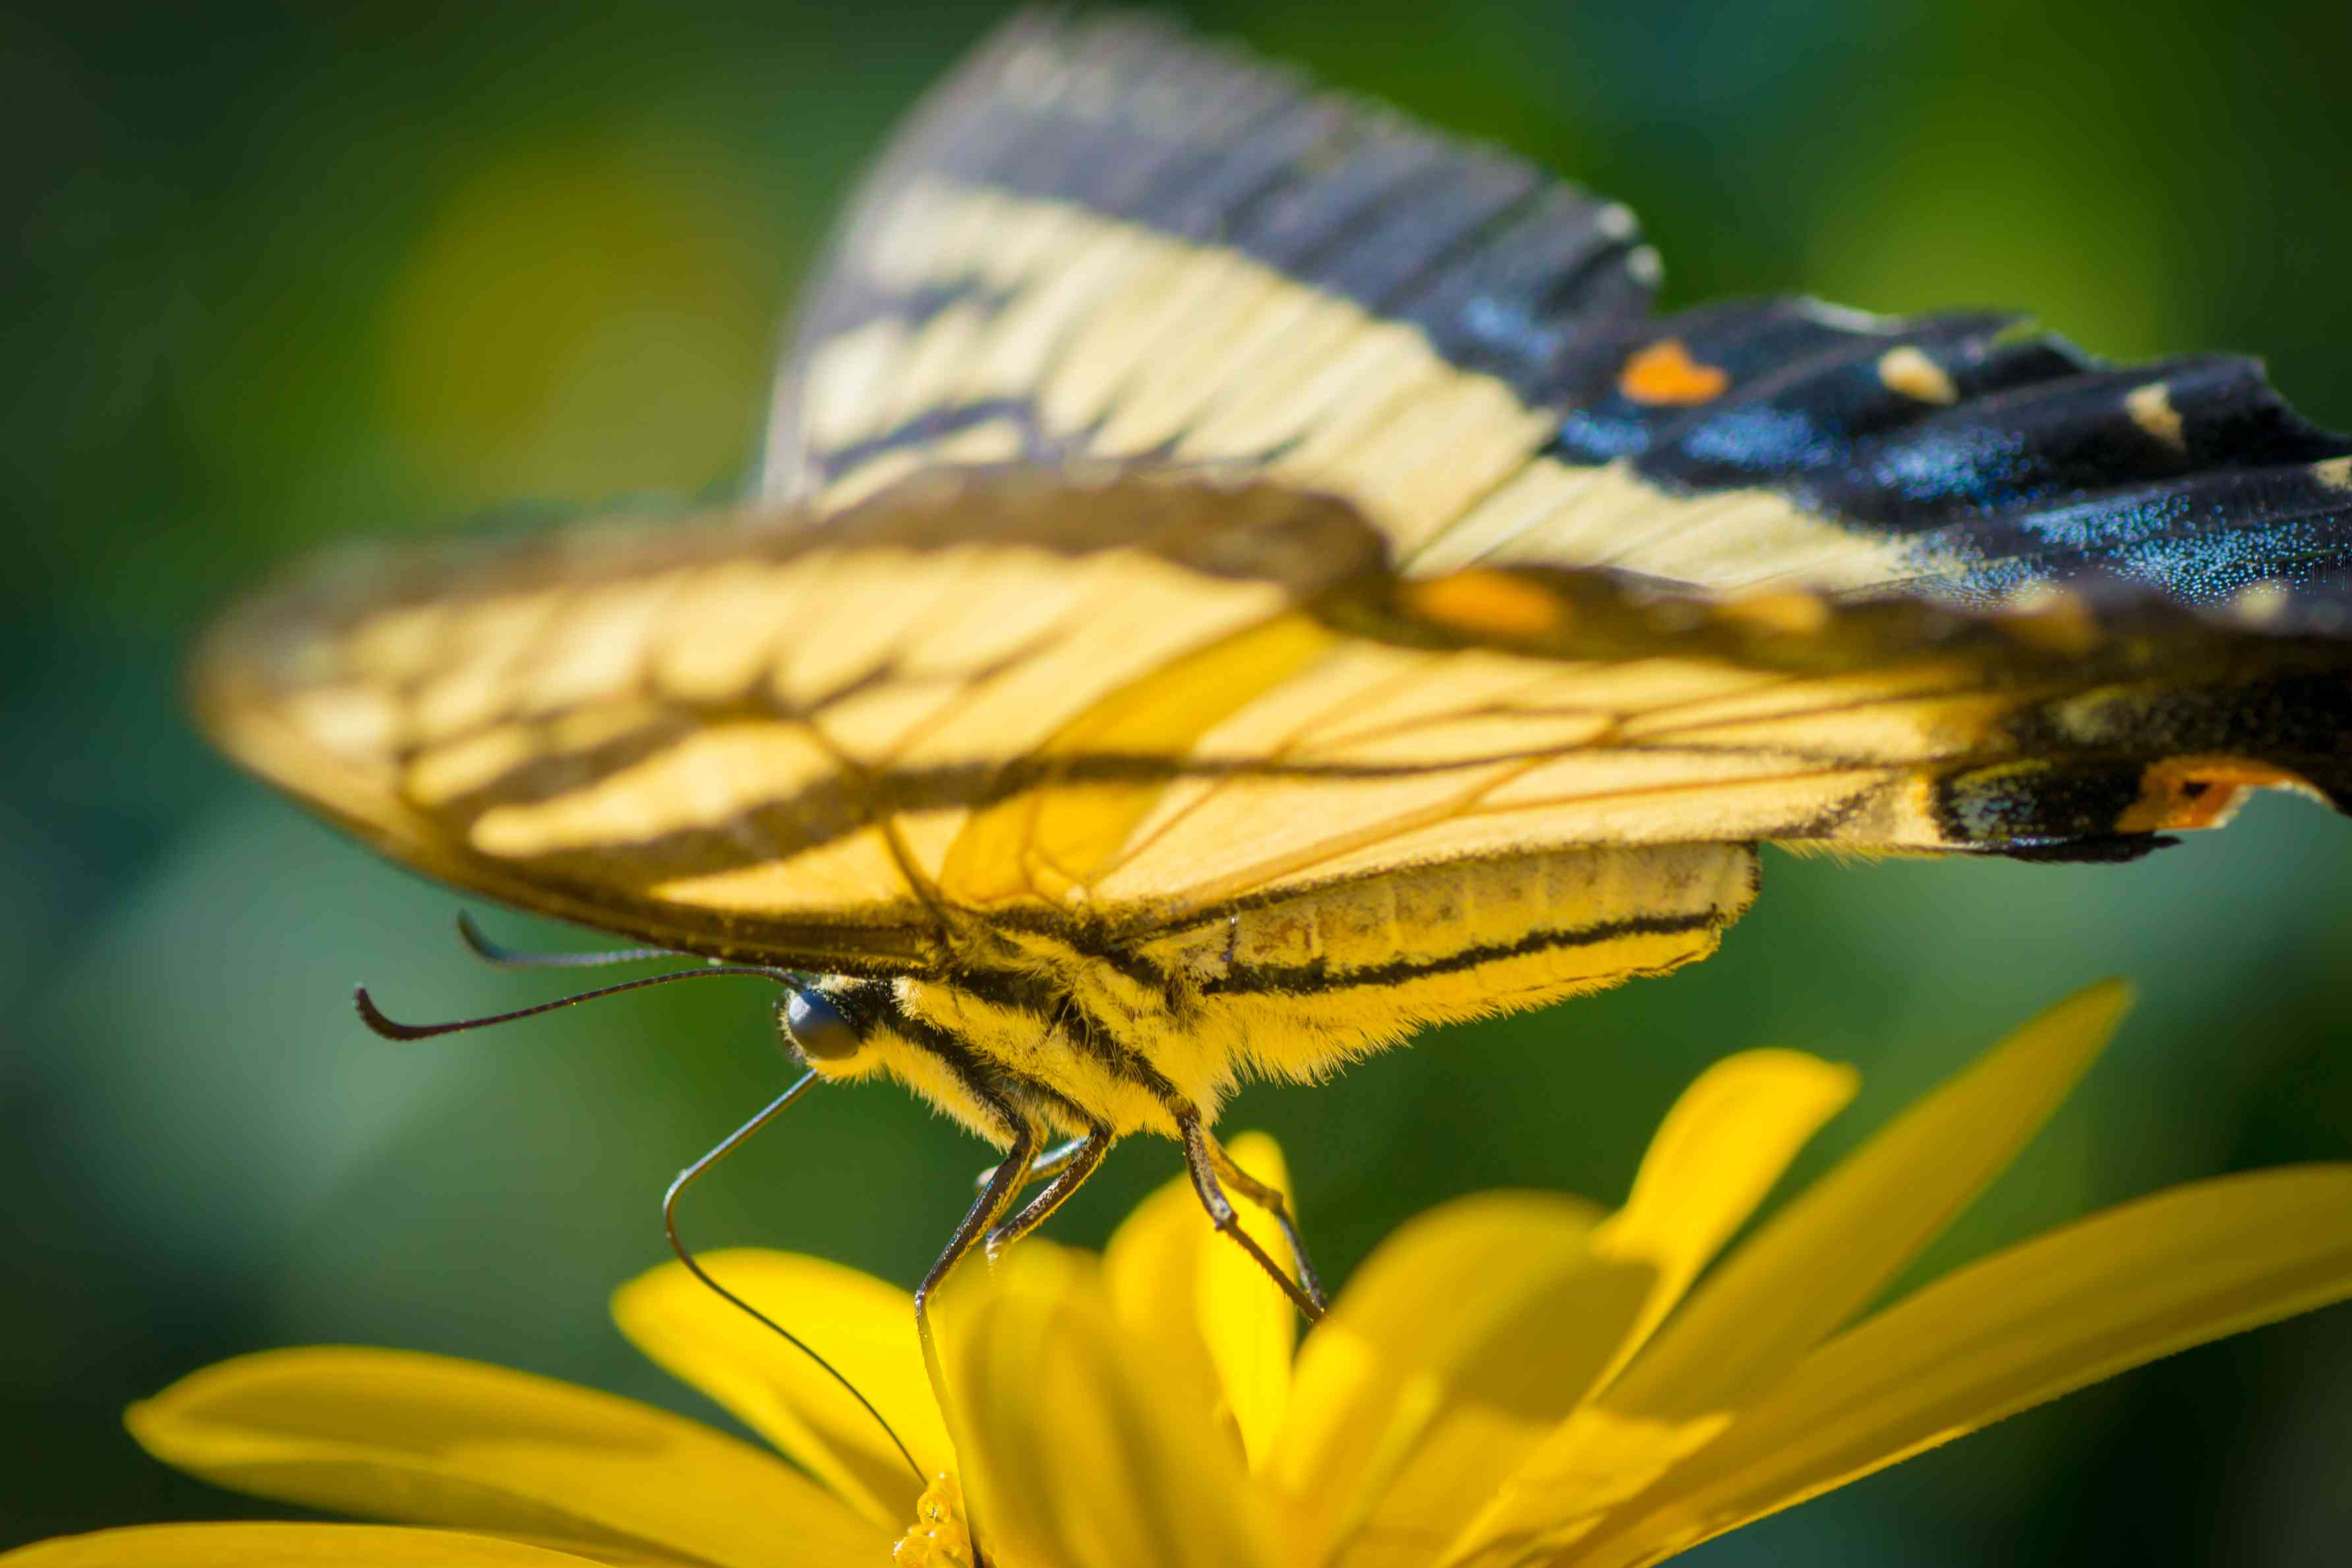 eastern tiger swallowtail butterfly, Papilio glaucus, in Ohio